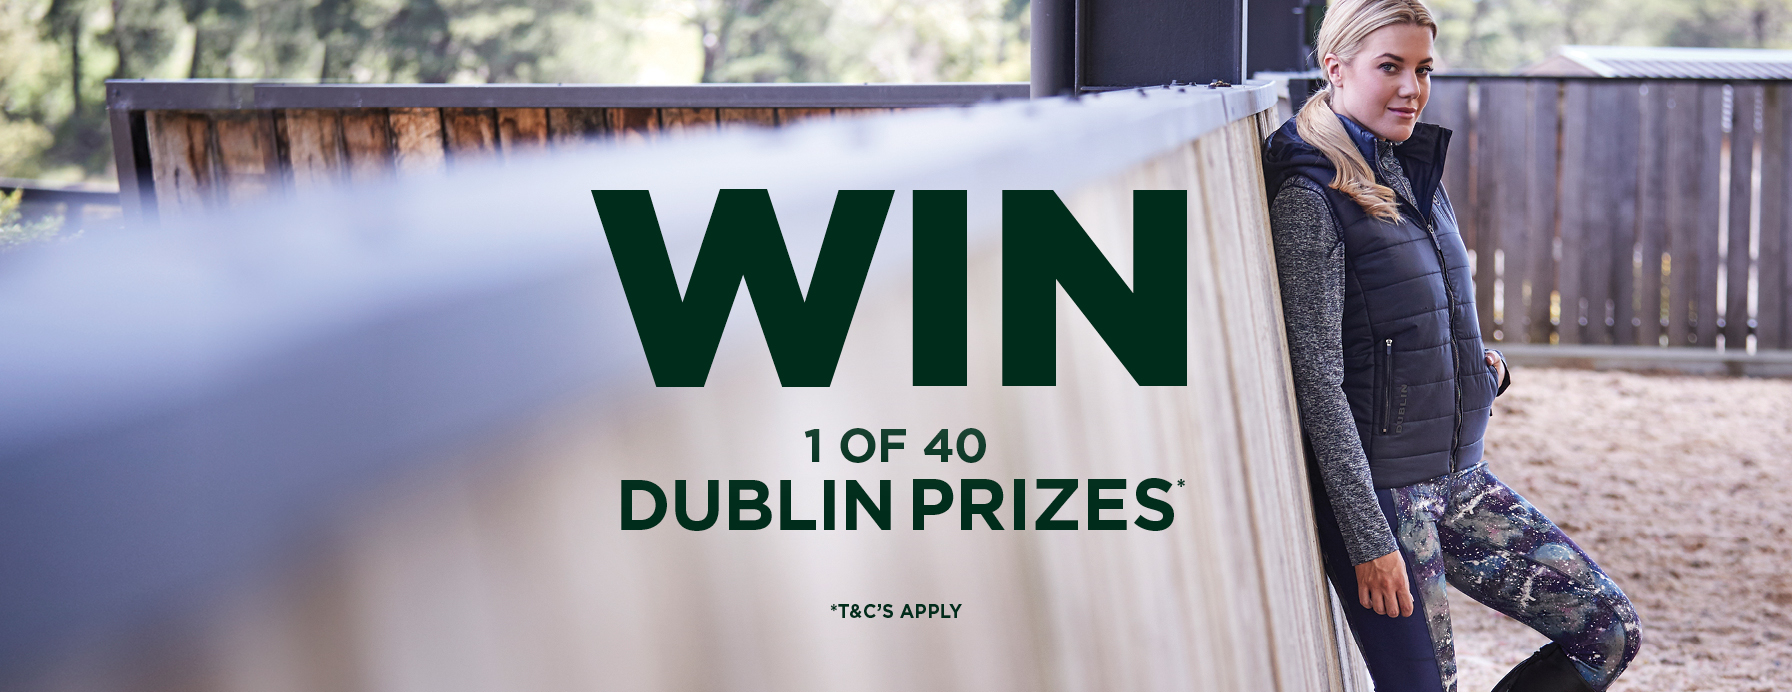 Enter to Win 1 of 40 Dublin Prizes